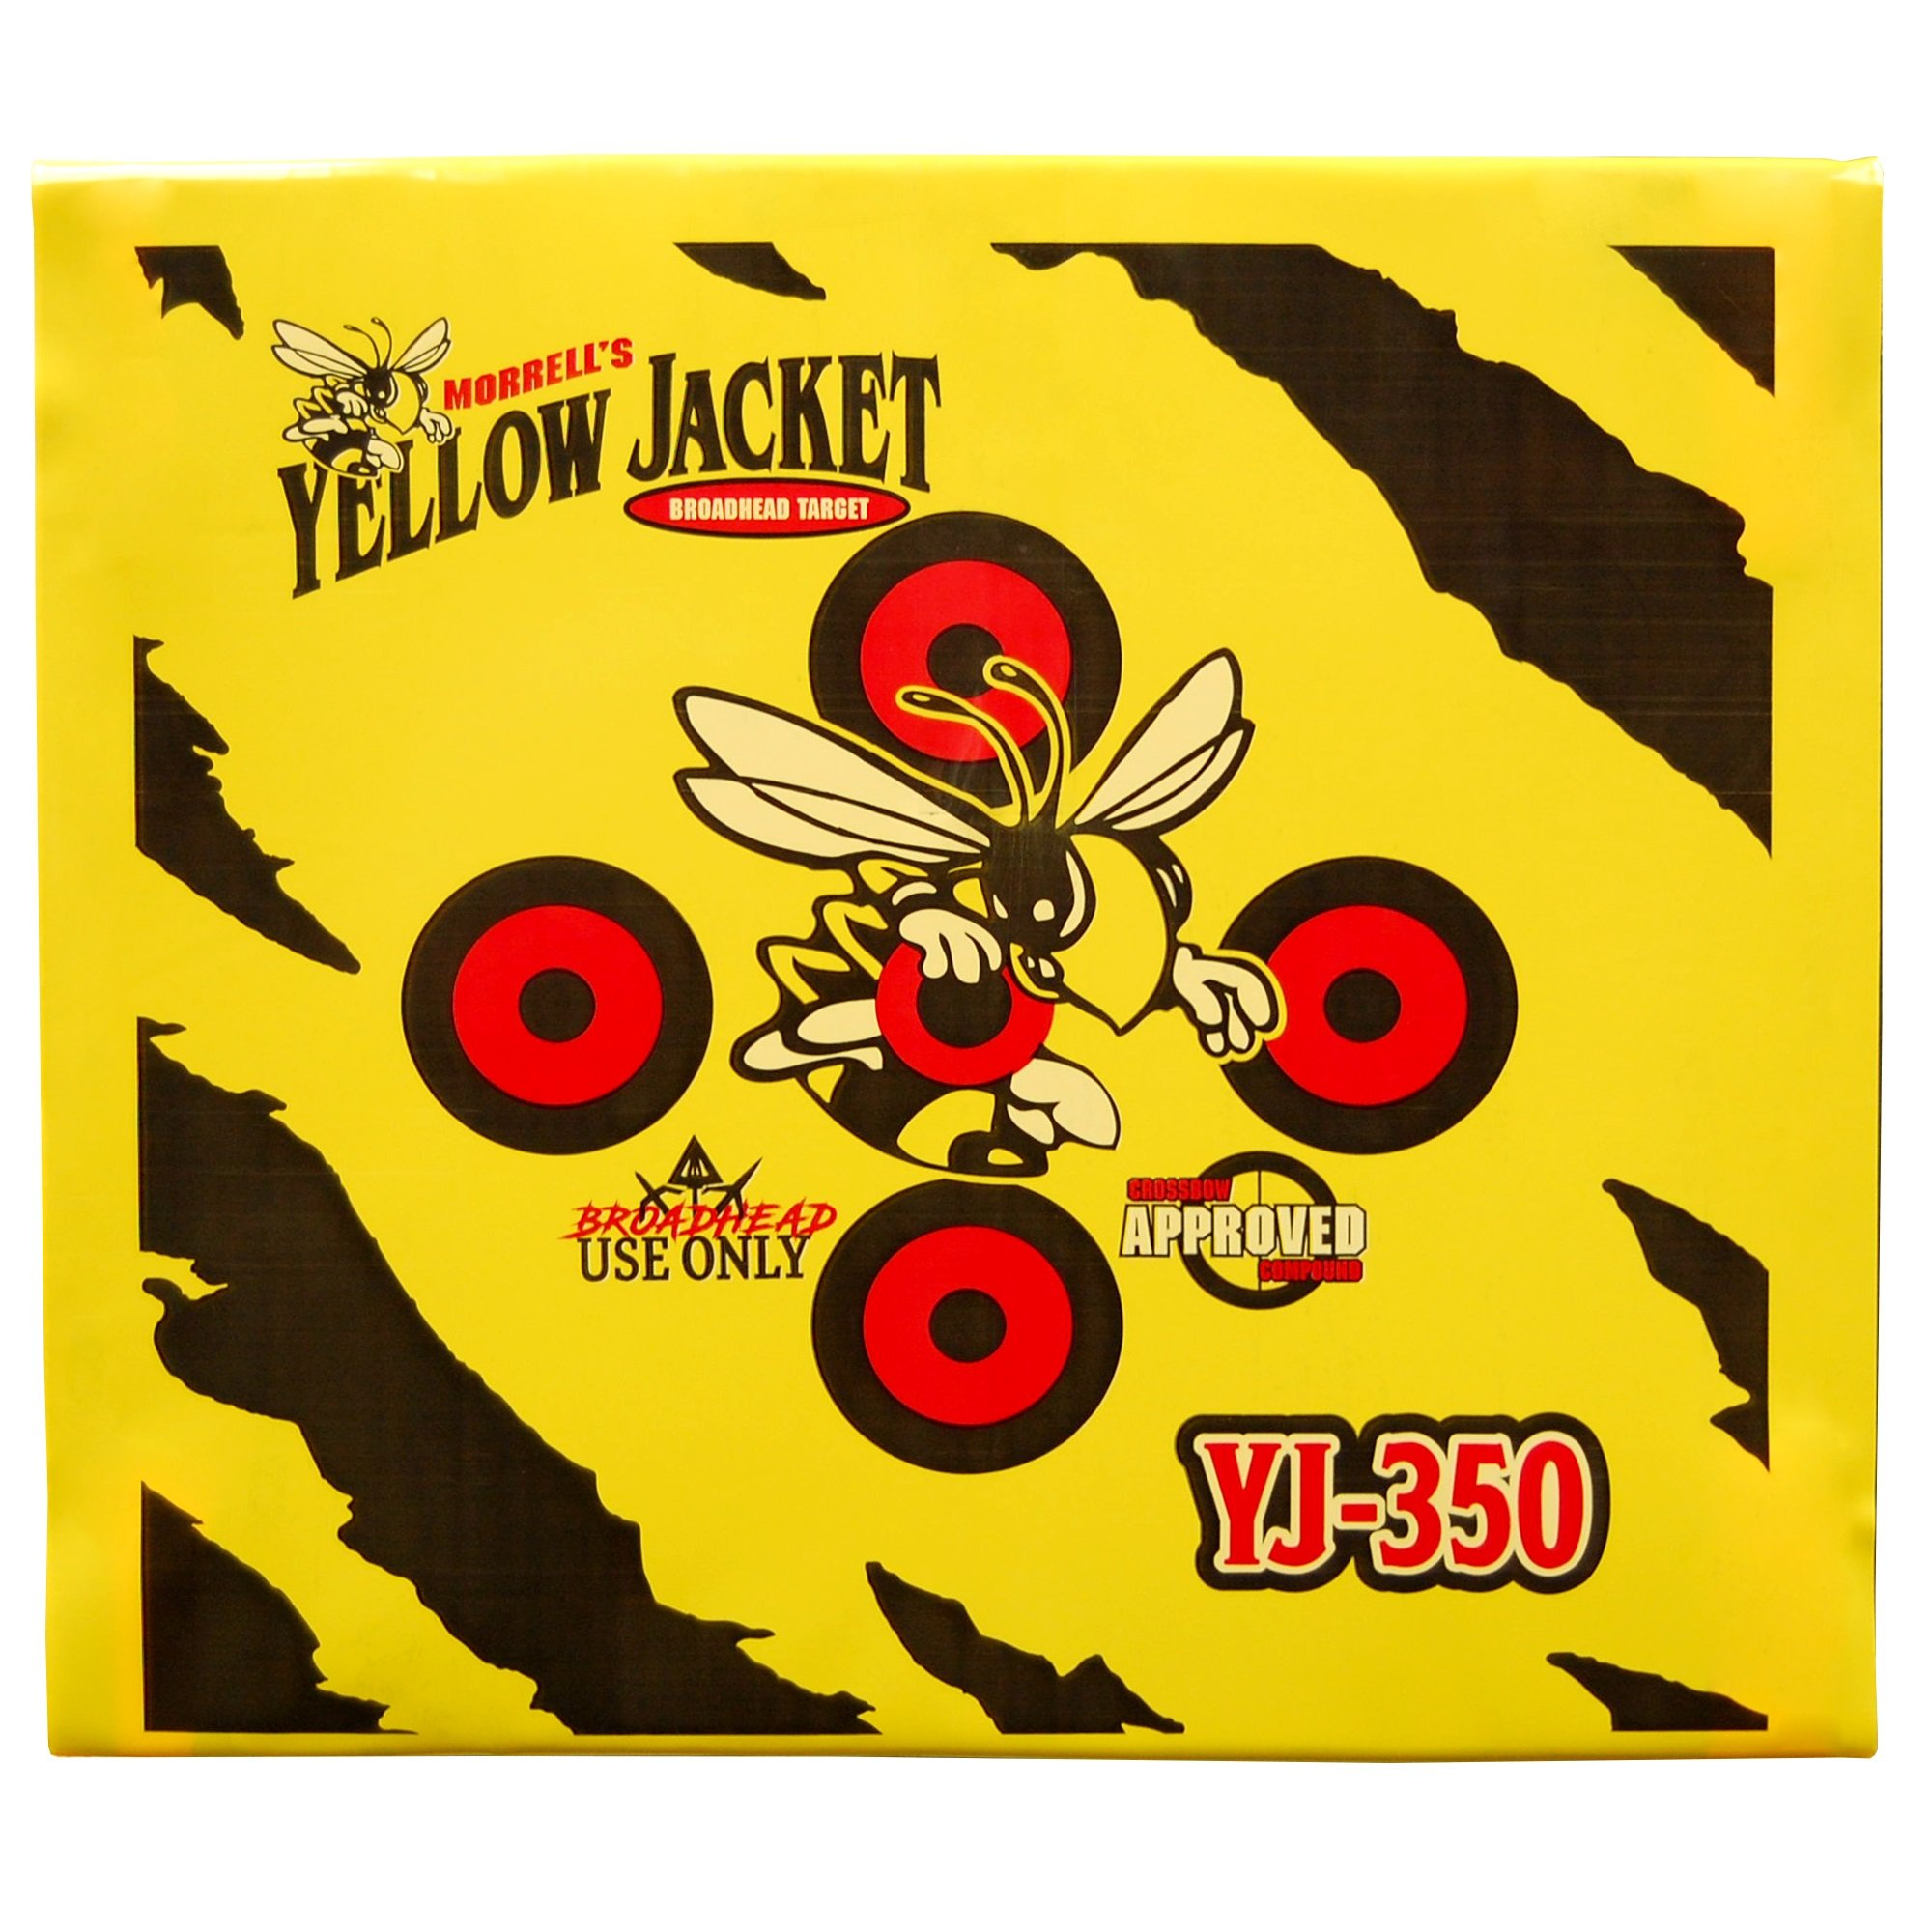 Morrell Yellow Jacket YJ-350 Broadhead Archery Target by Morrell (Image #7)